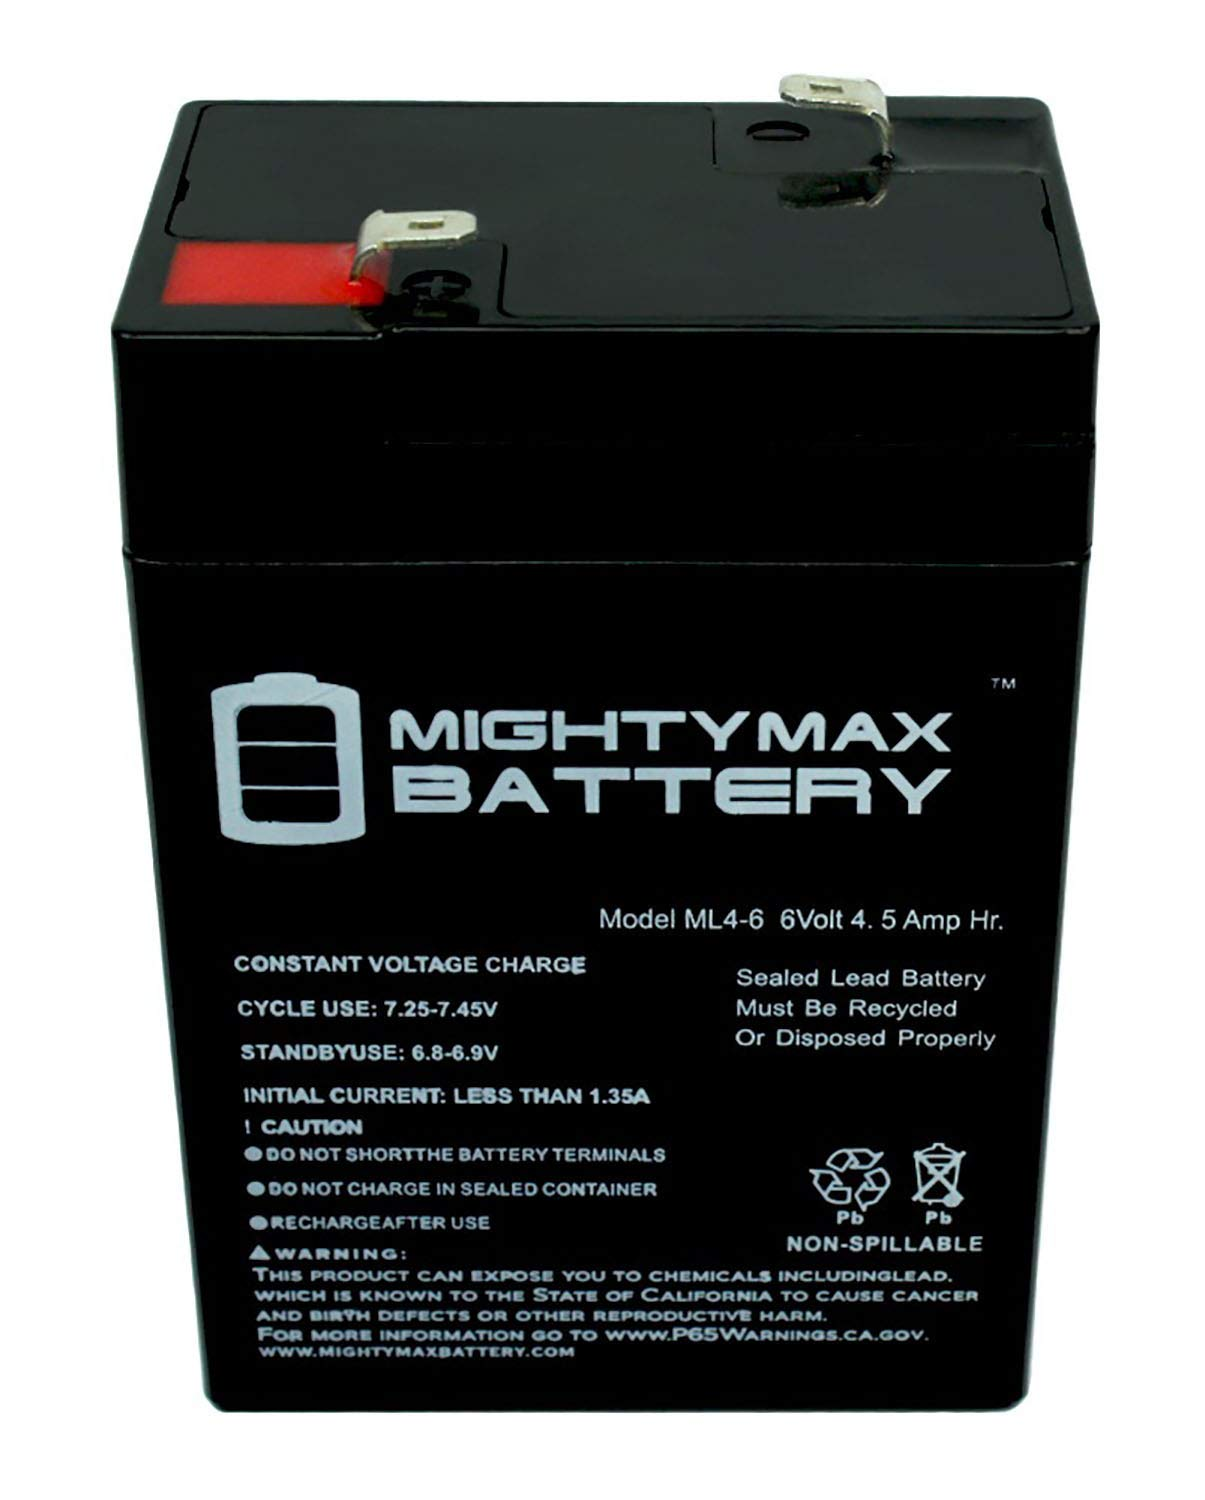 Mighty Max Battery ML4-6 - 6V 4.5AH Replacement Battery for YT-645 with F1 Terminal - 15 Pack Brand Product by Mighty Max Battery (Image #3)